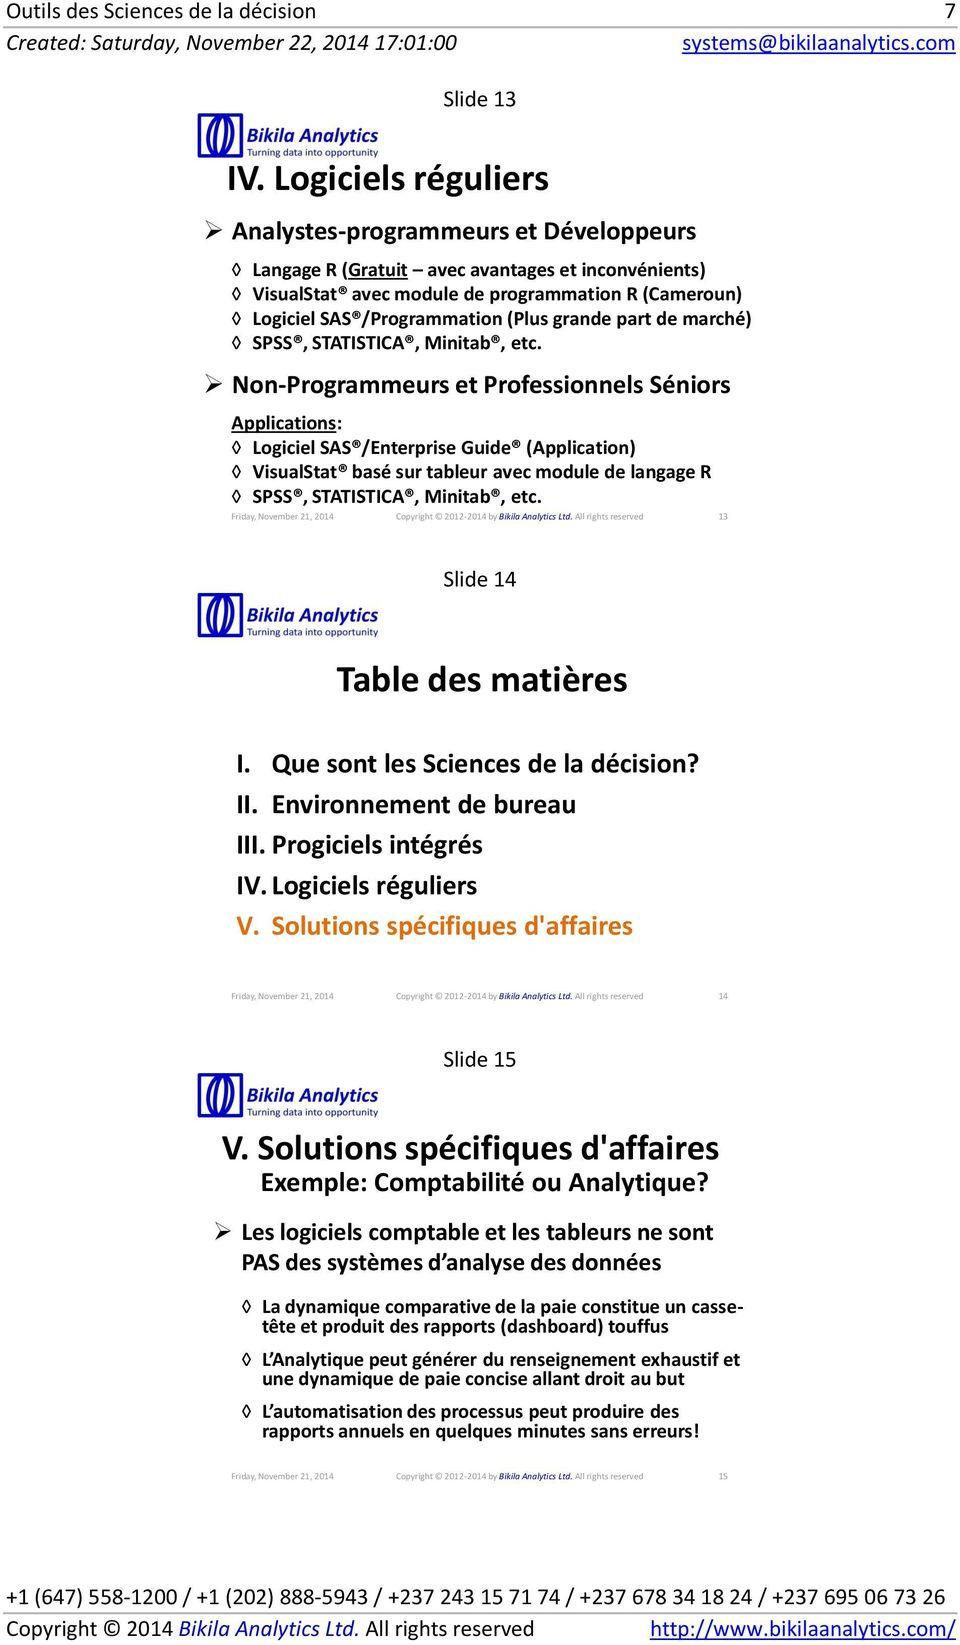 Non-Programmeurs et Professionnels Séniors Applications: Logiciel SAS /Enterprise Guide (Application) VisualStat basé sur tableur avec module de langage R SPSS, STATISTICA, Minitab, etc.